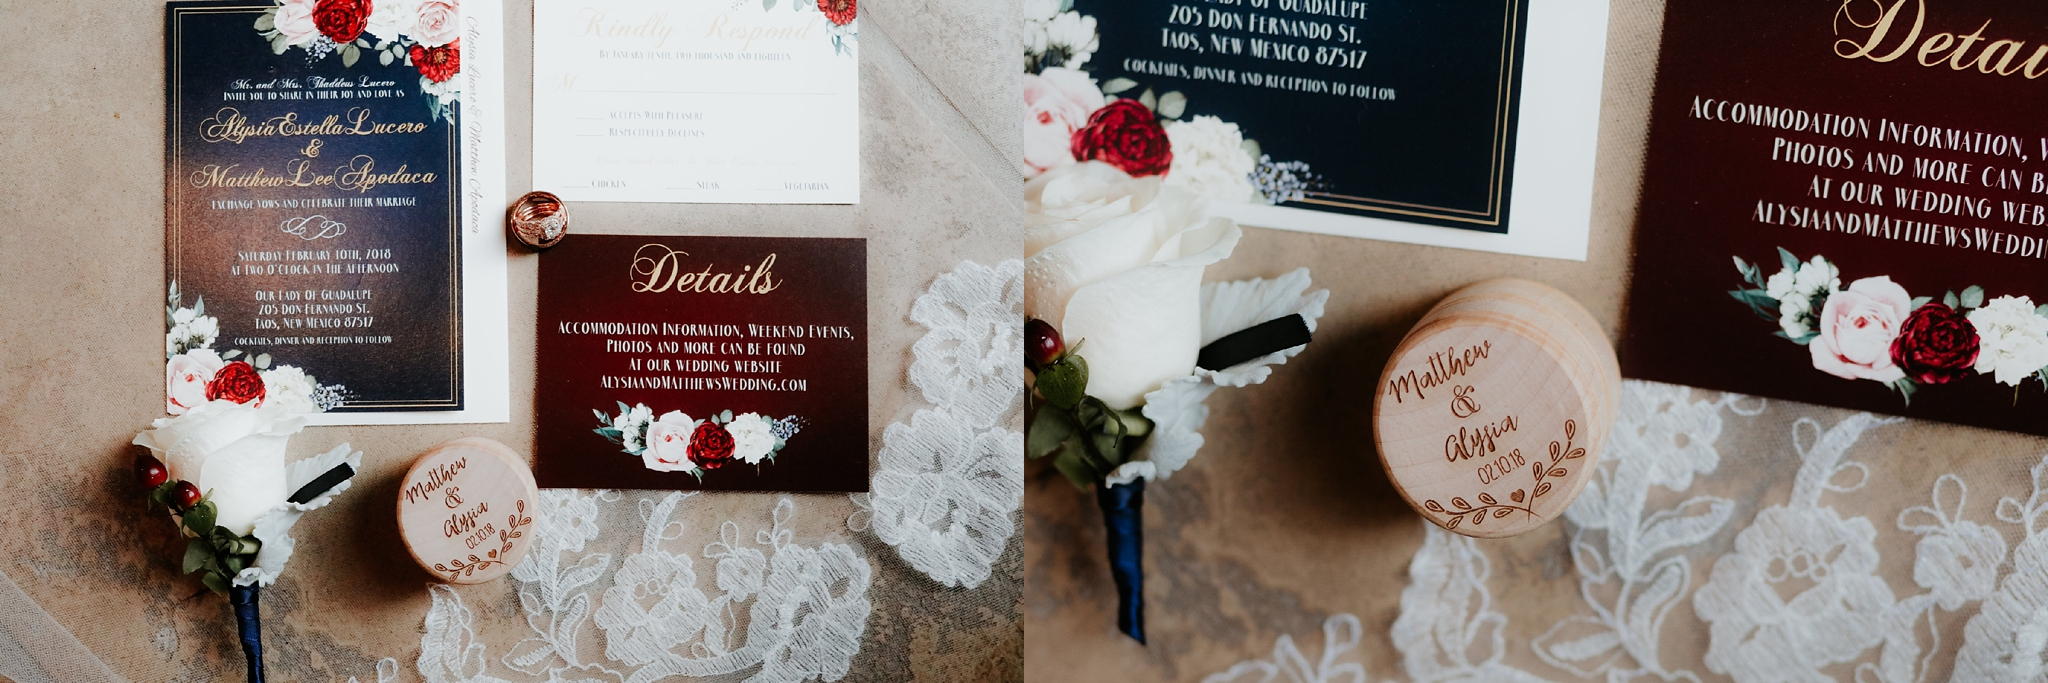 Alicia+lucia+photography+-+albuquerque+wedding+photographer+-+santa+fe+wedding+photography+-+new+mexico+wedding+photographer+-+new+mexico+wedding+-+wedding+invitations+-+invitation+suite+-+wedding+inspo_0049.jpg